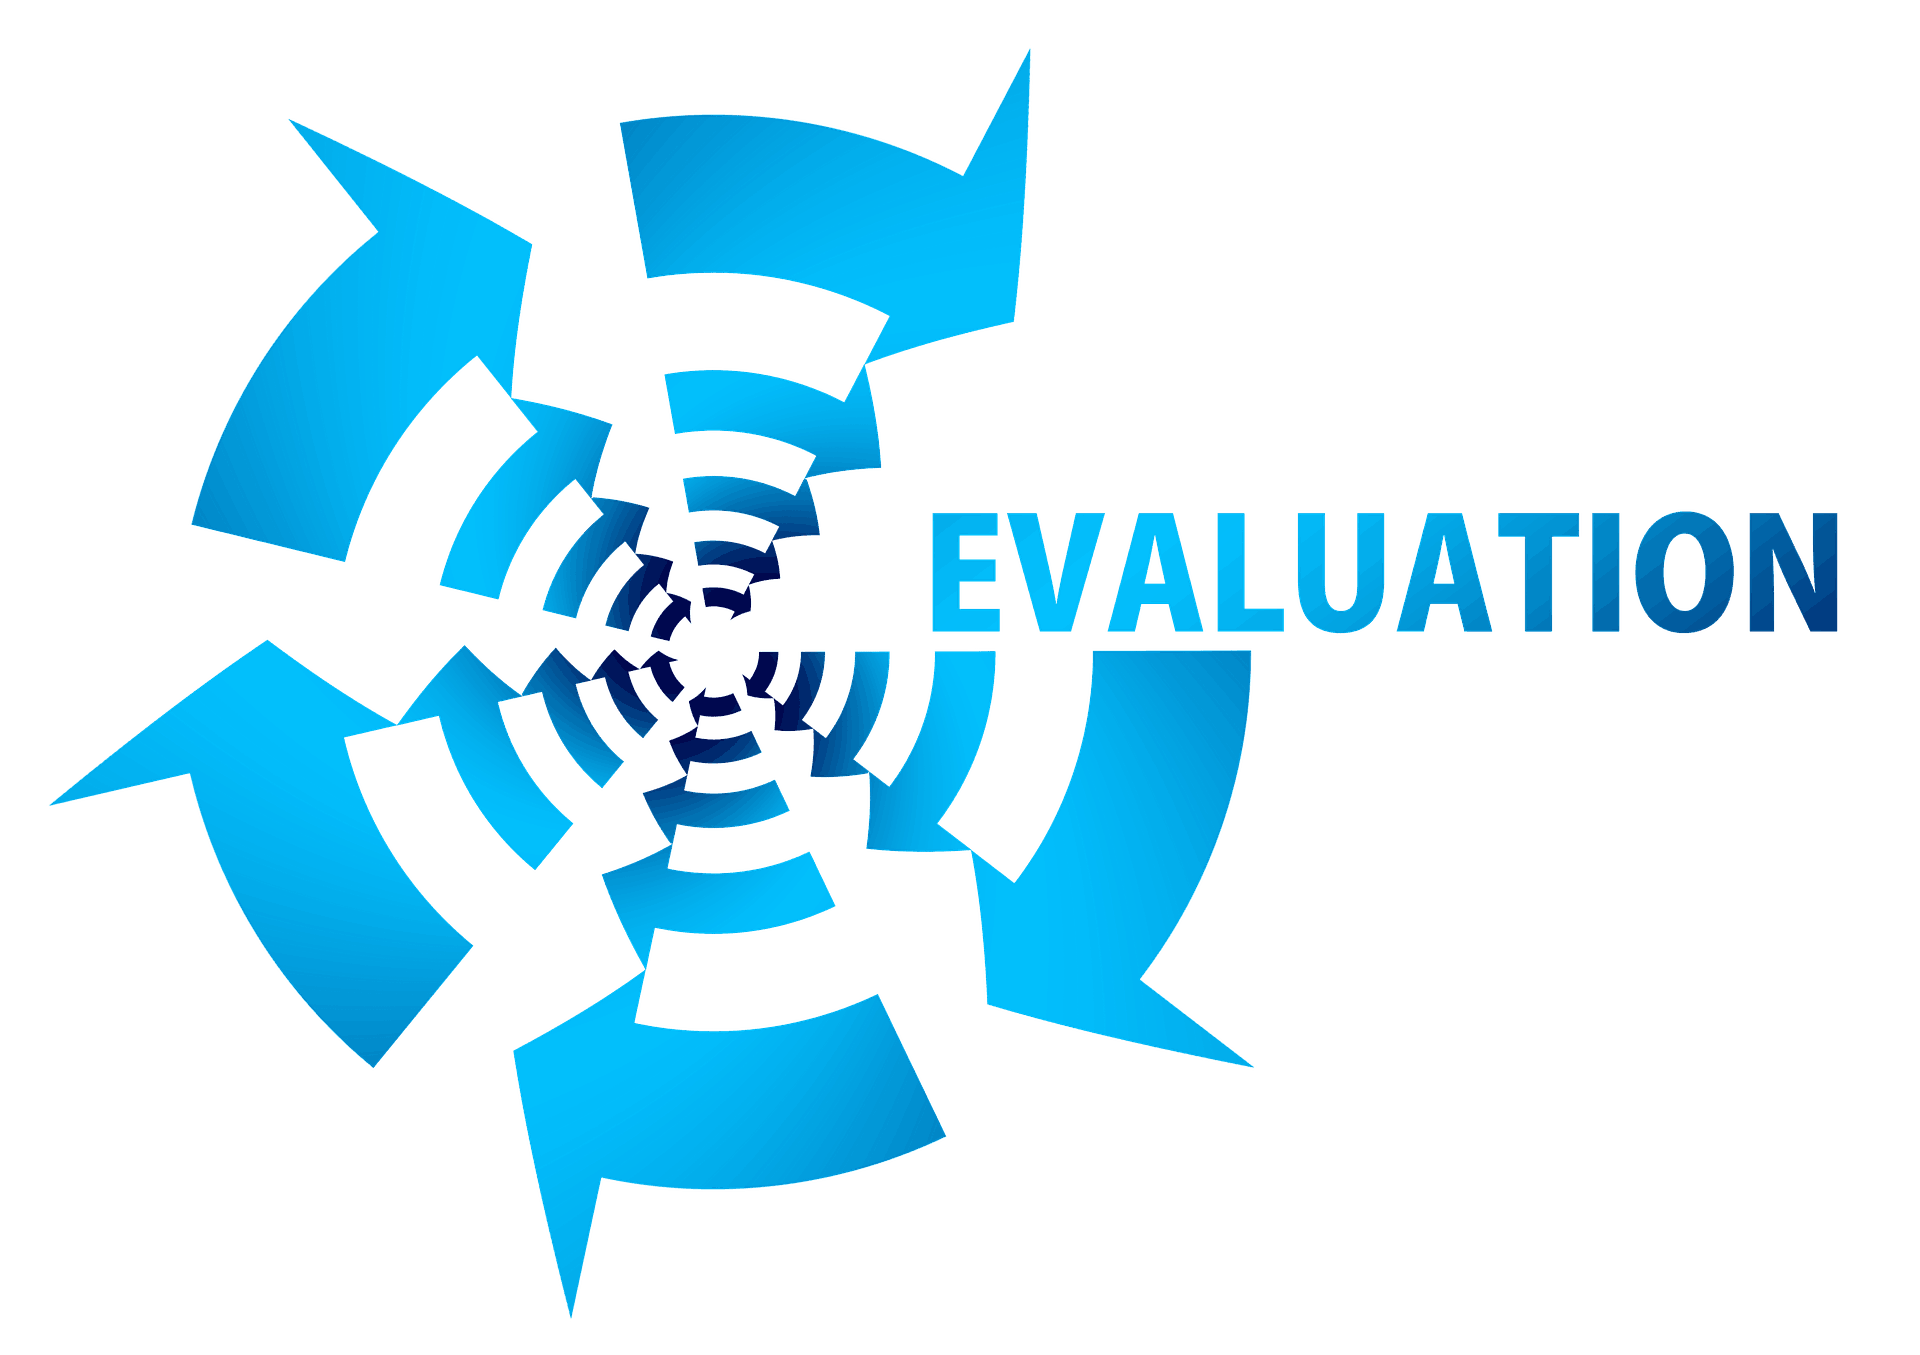 This is a graphic of an evaluation cycle.